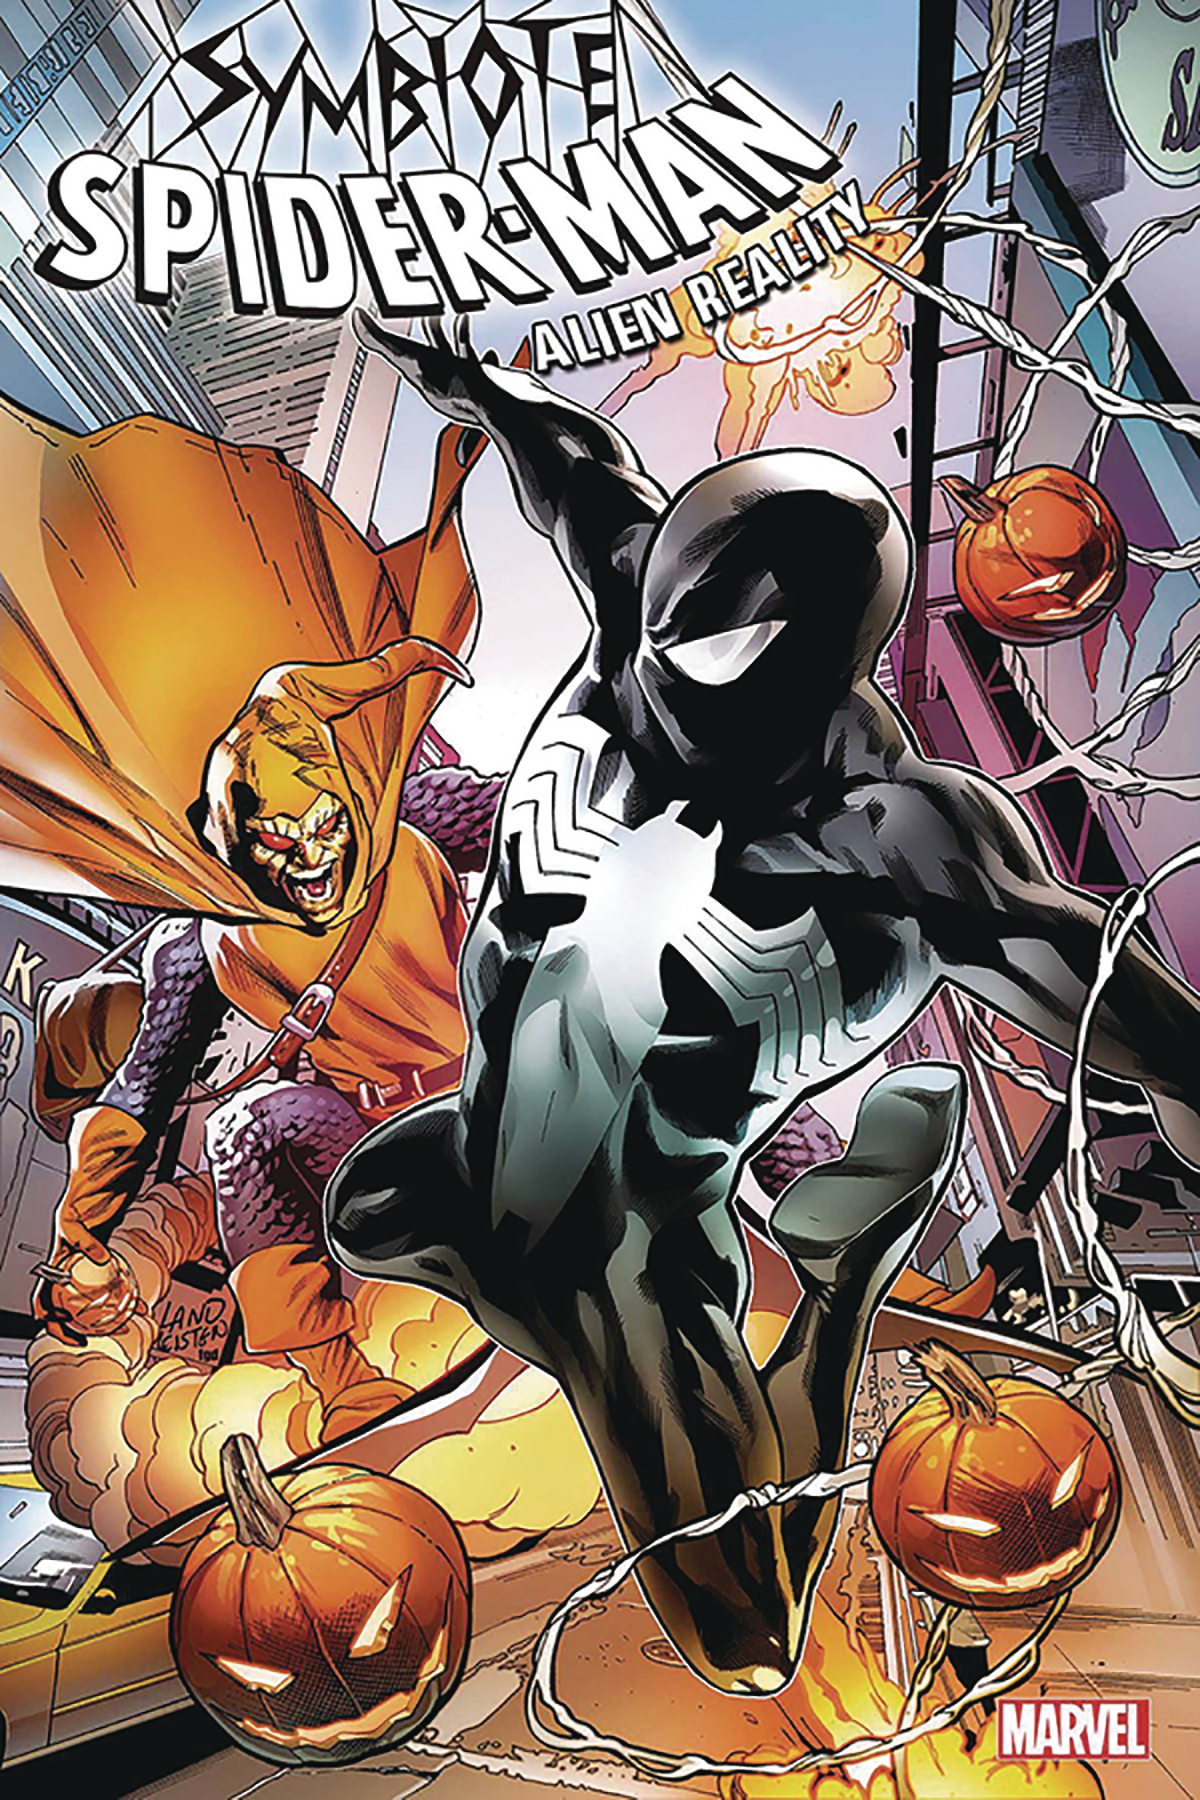 DF SYMBIOTE SPIDERMAN ALIEN REALITY SGN DAVID